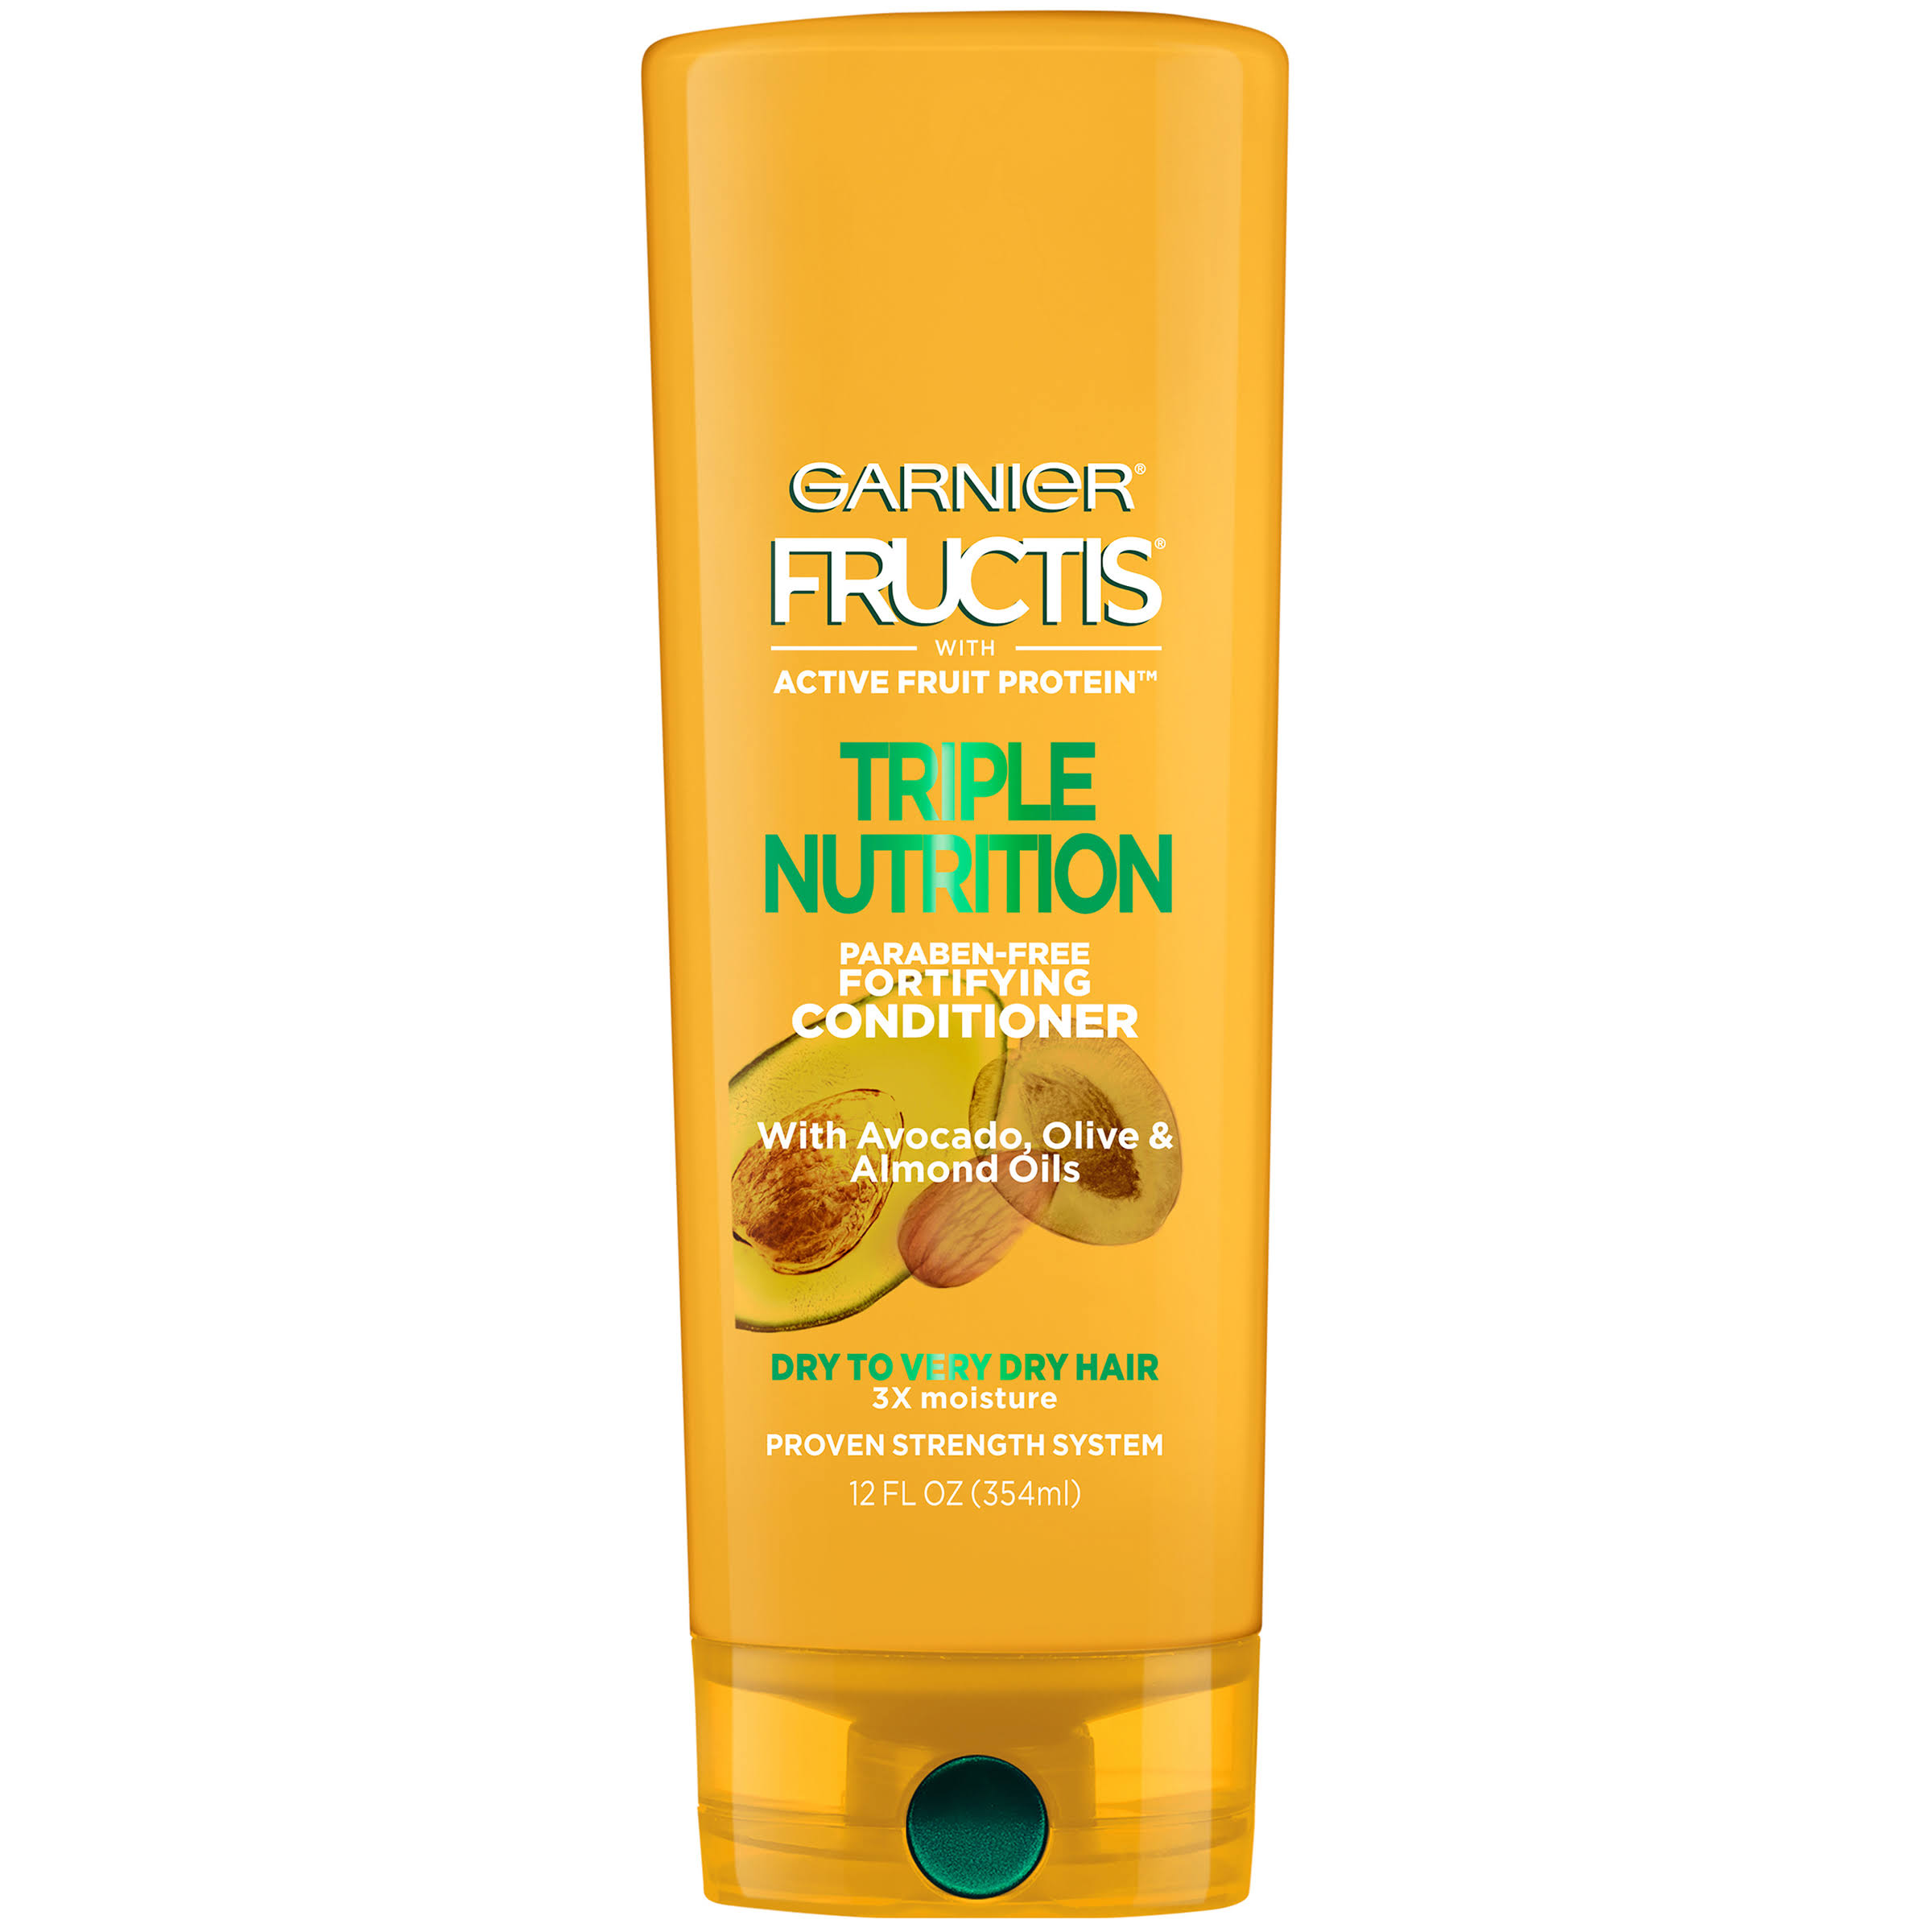 Garnier Fructis Triple Nutrition Conditioner - 354ml